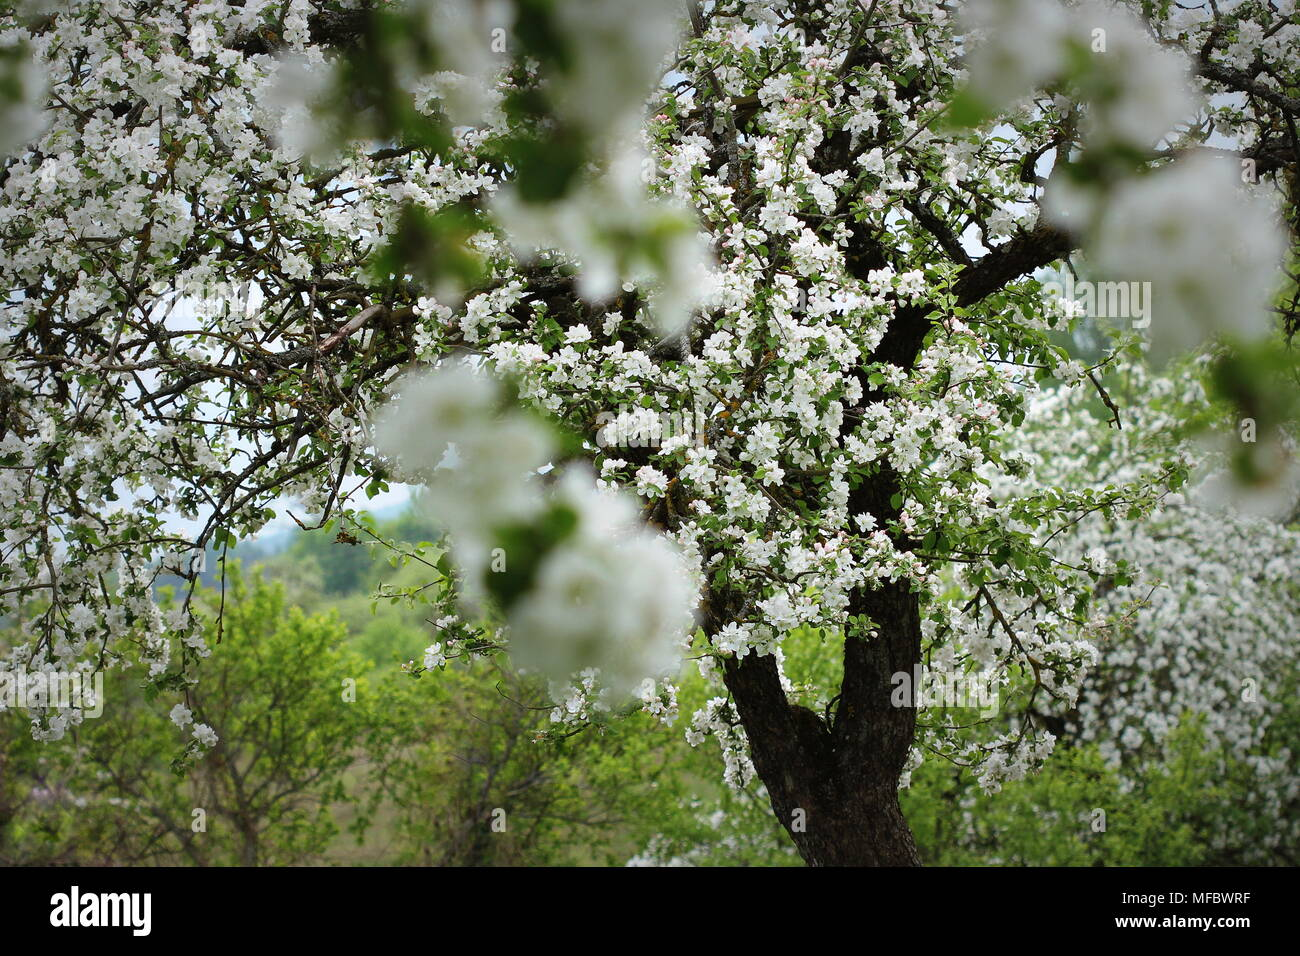 Spring blossom background. Beautiful nature scene with blooming tree of apple - Stock Image